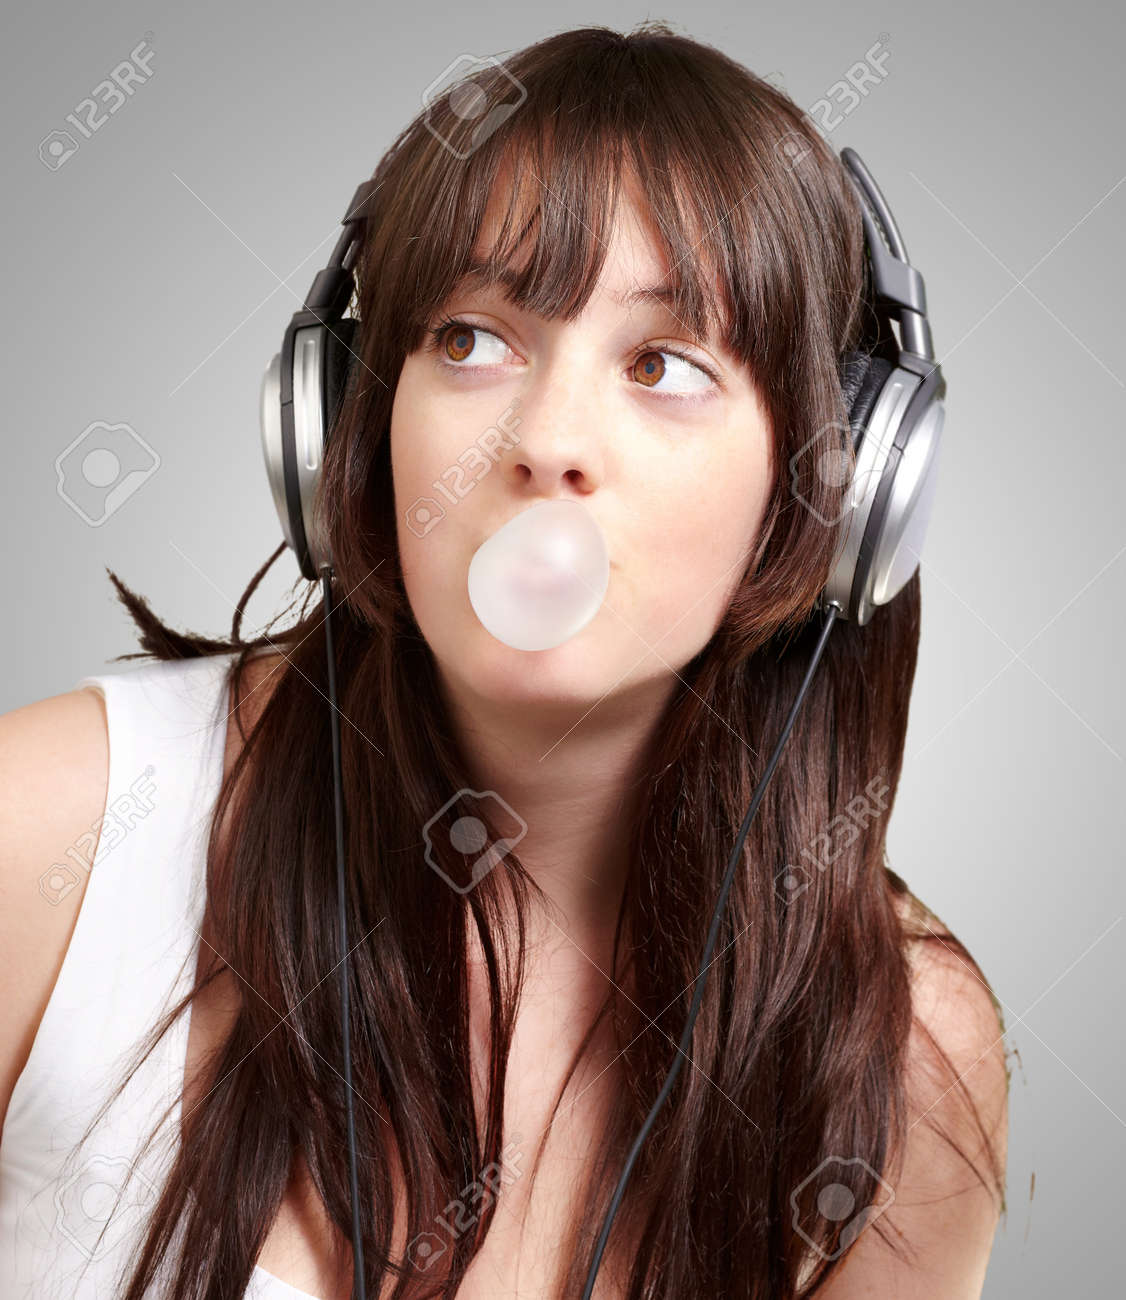 portrait of young woman listening to music with bubble gum over grey background Stock Photo - 13280534